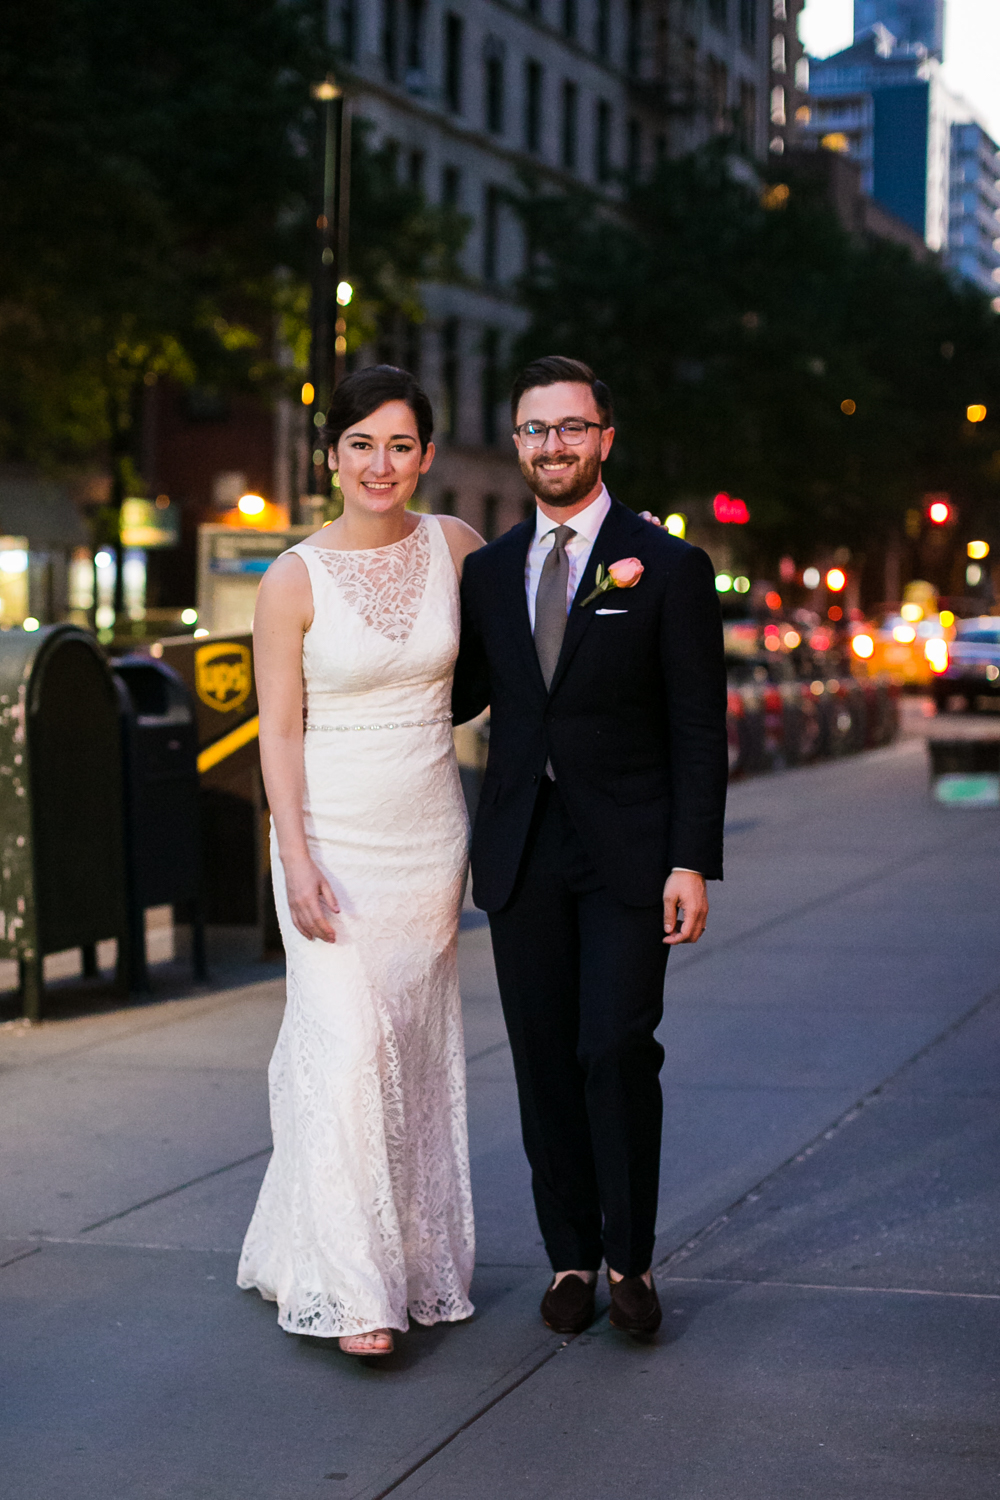 Bride and groom in New York City